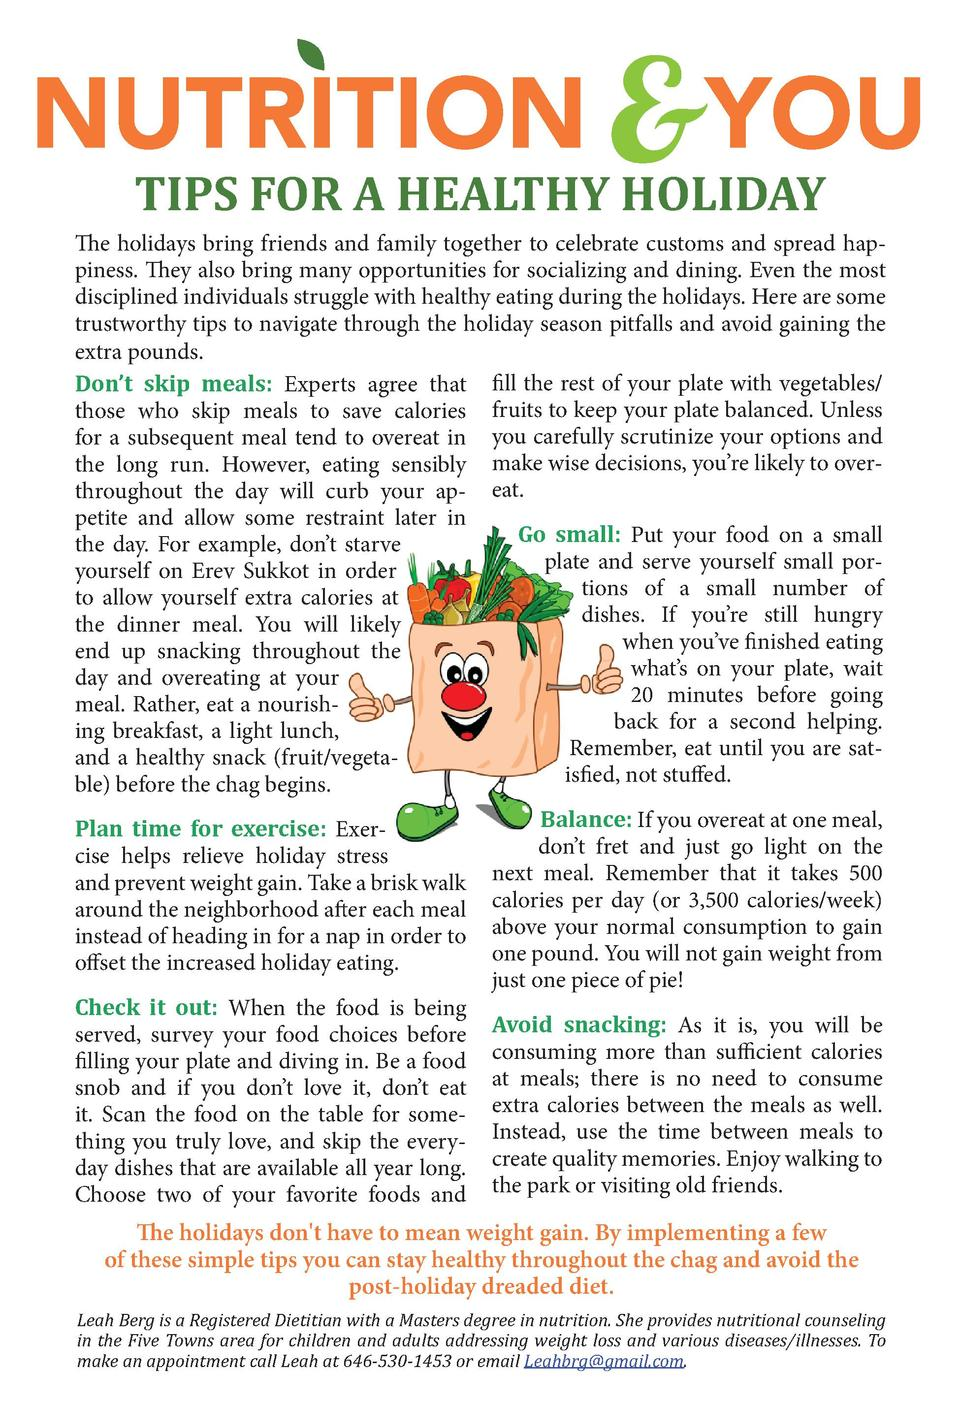 NUTRITION  YOU TIPS FOR A HEALTHY HOLIDAY  The holidays bring friends and family together to celebrate customs and spread ...